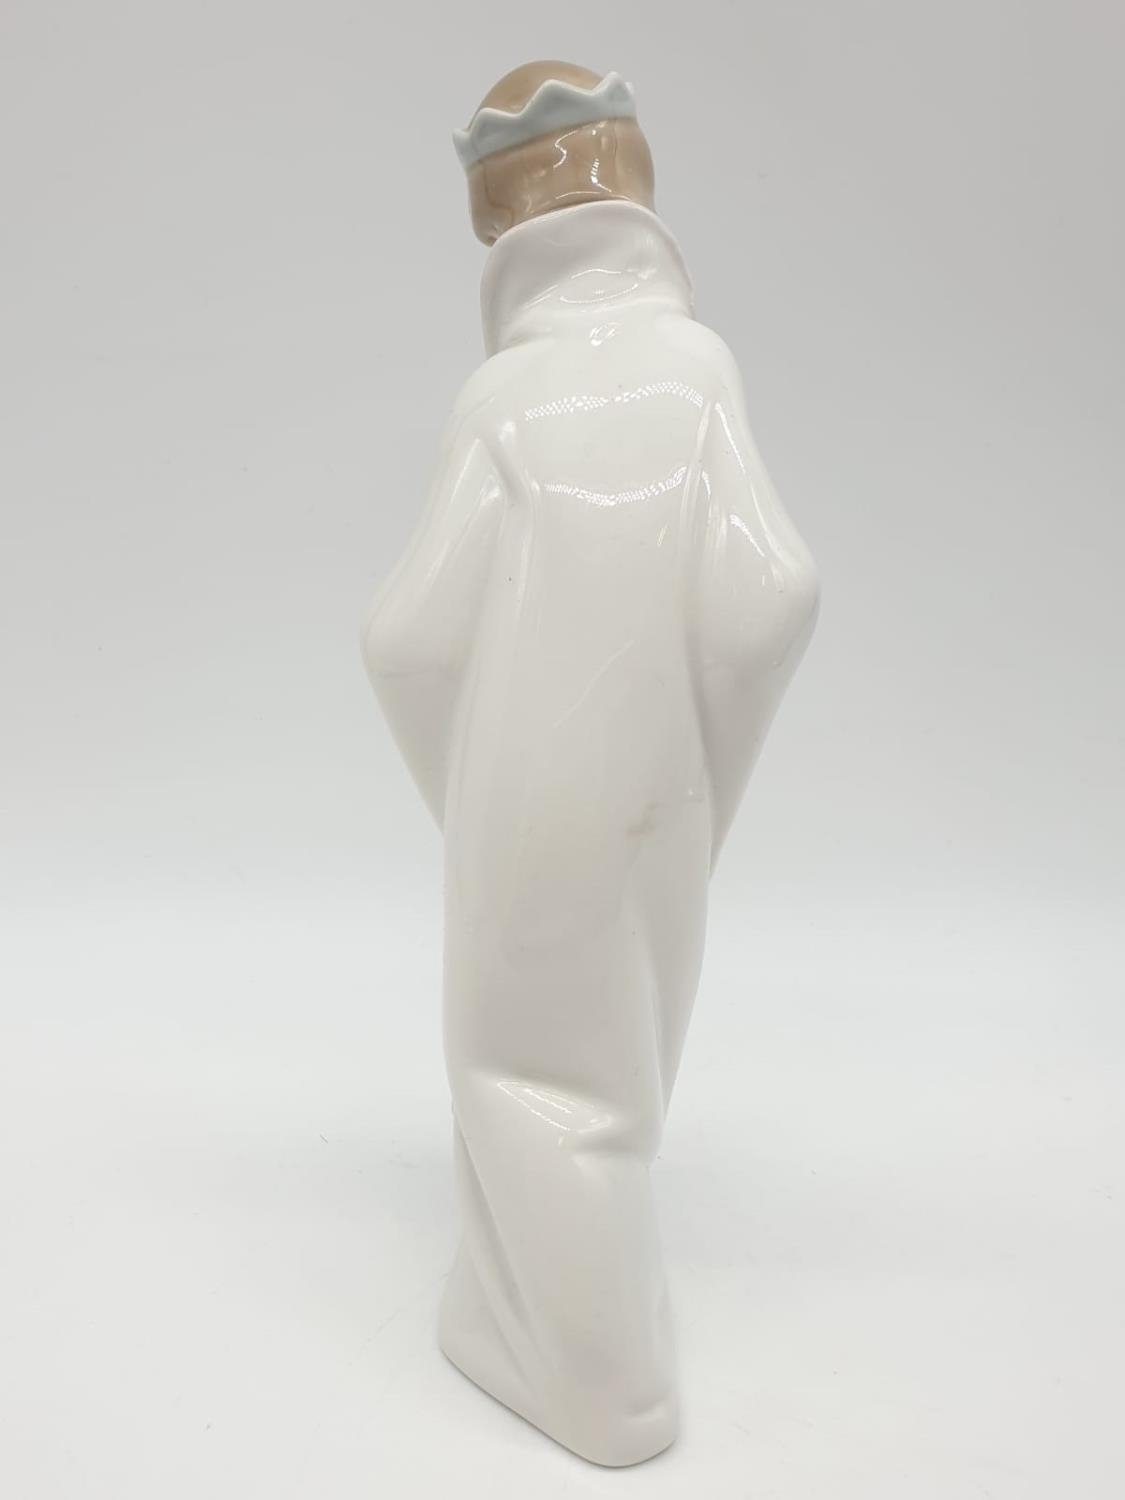 Lladro statue of a young Prince holding a car. 21cm tall. - Image 4 of 6